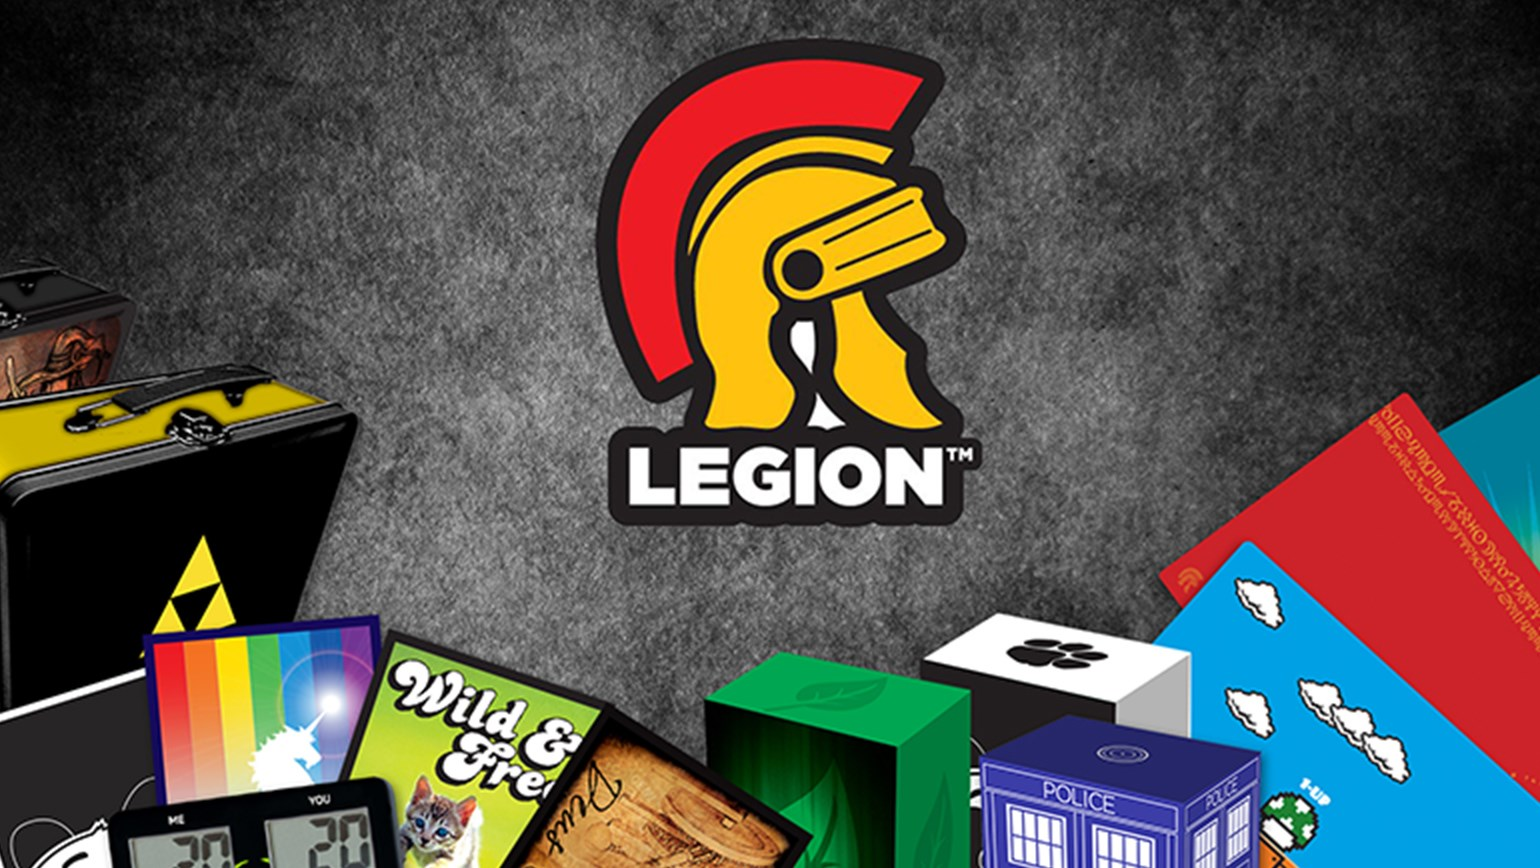 Legion Premium Supplies Available to List